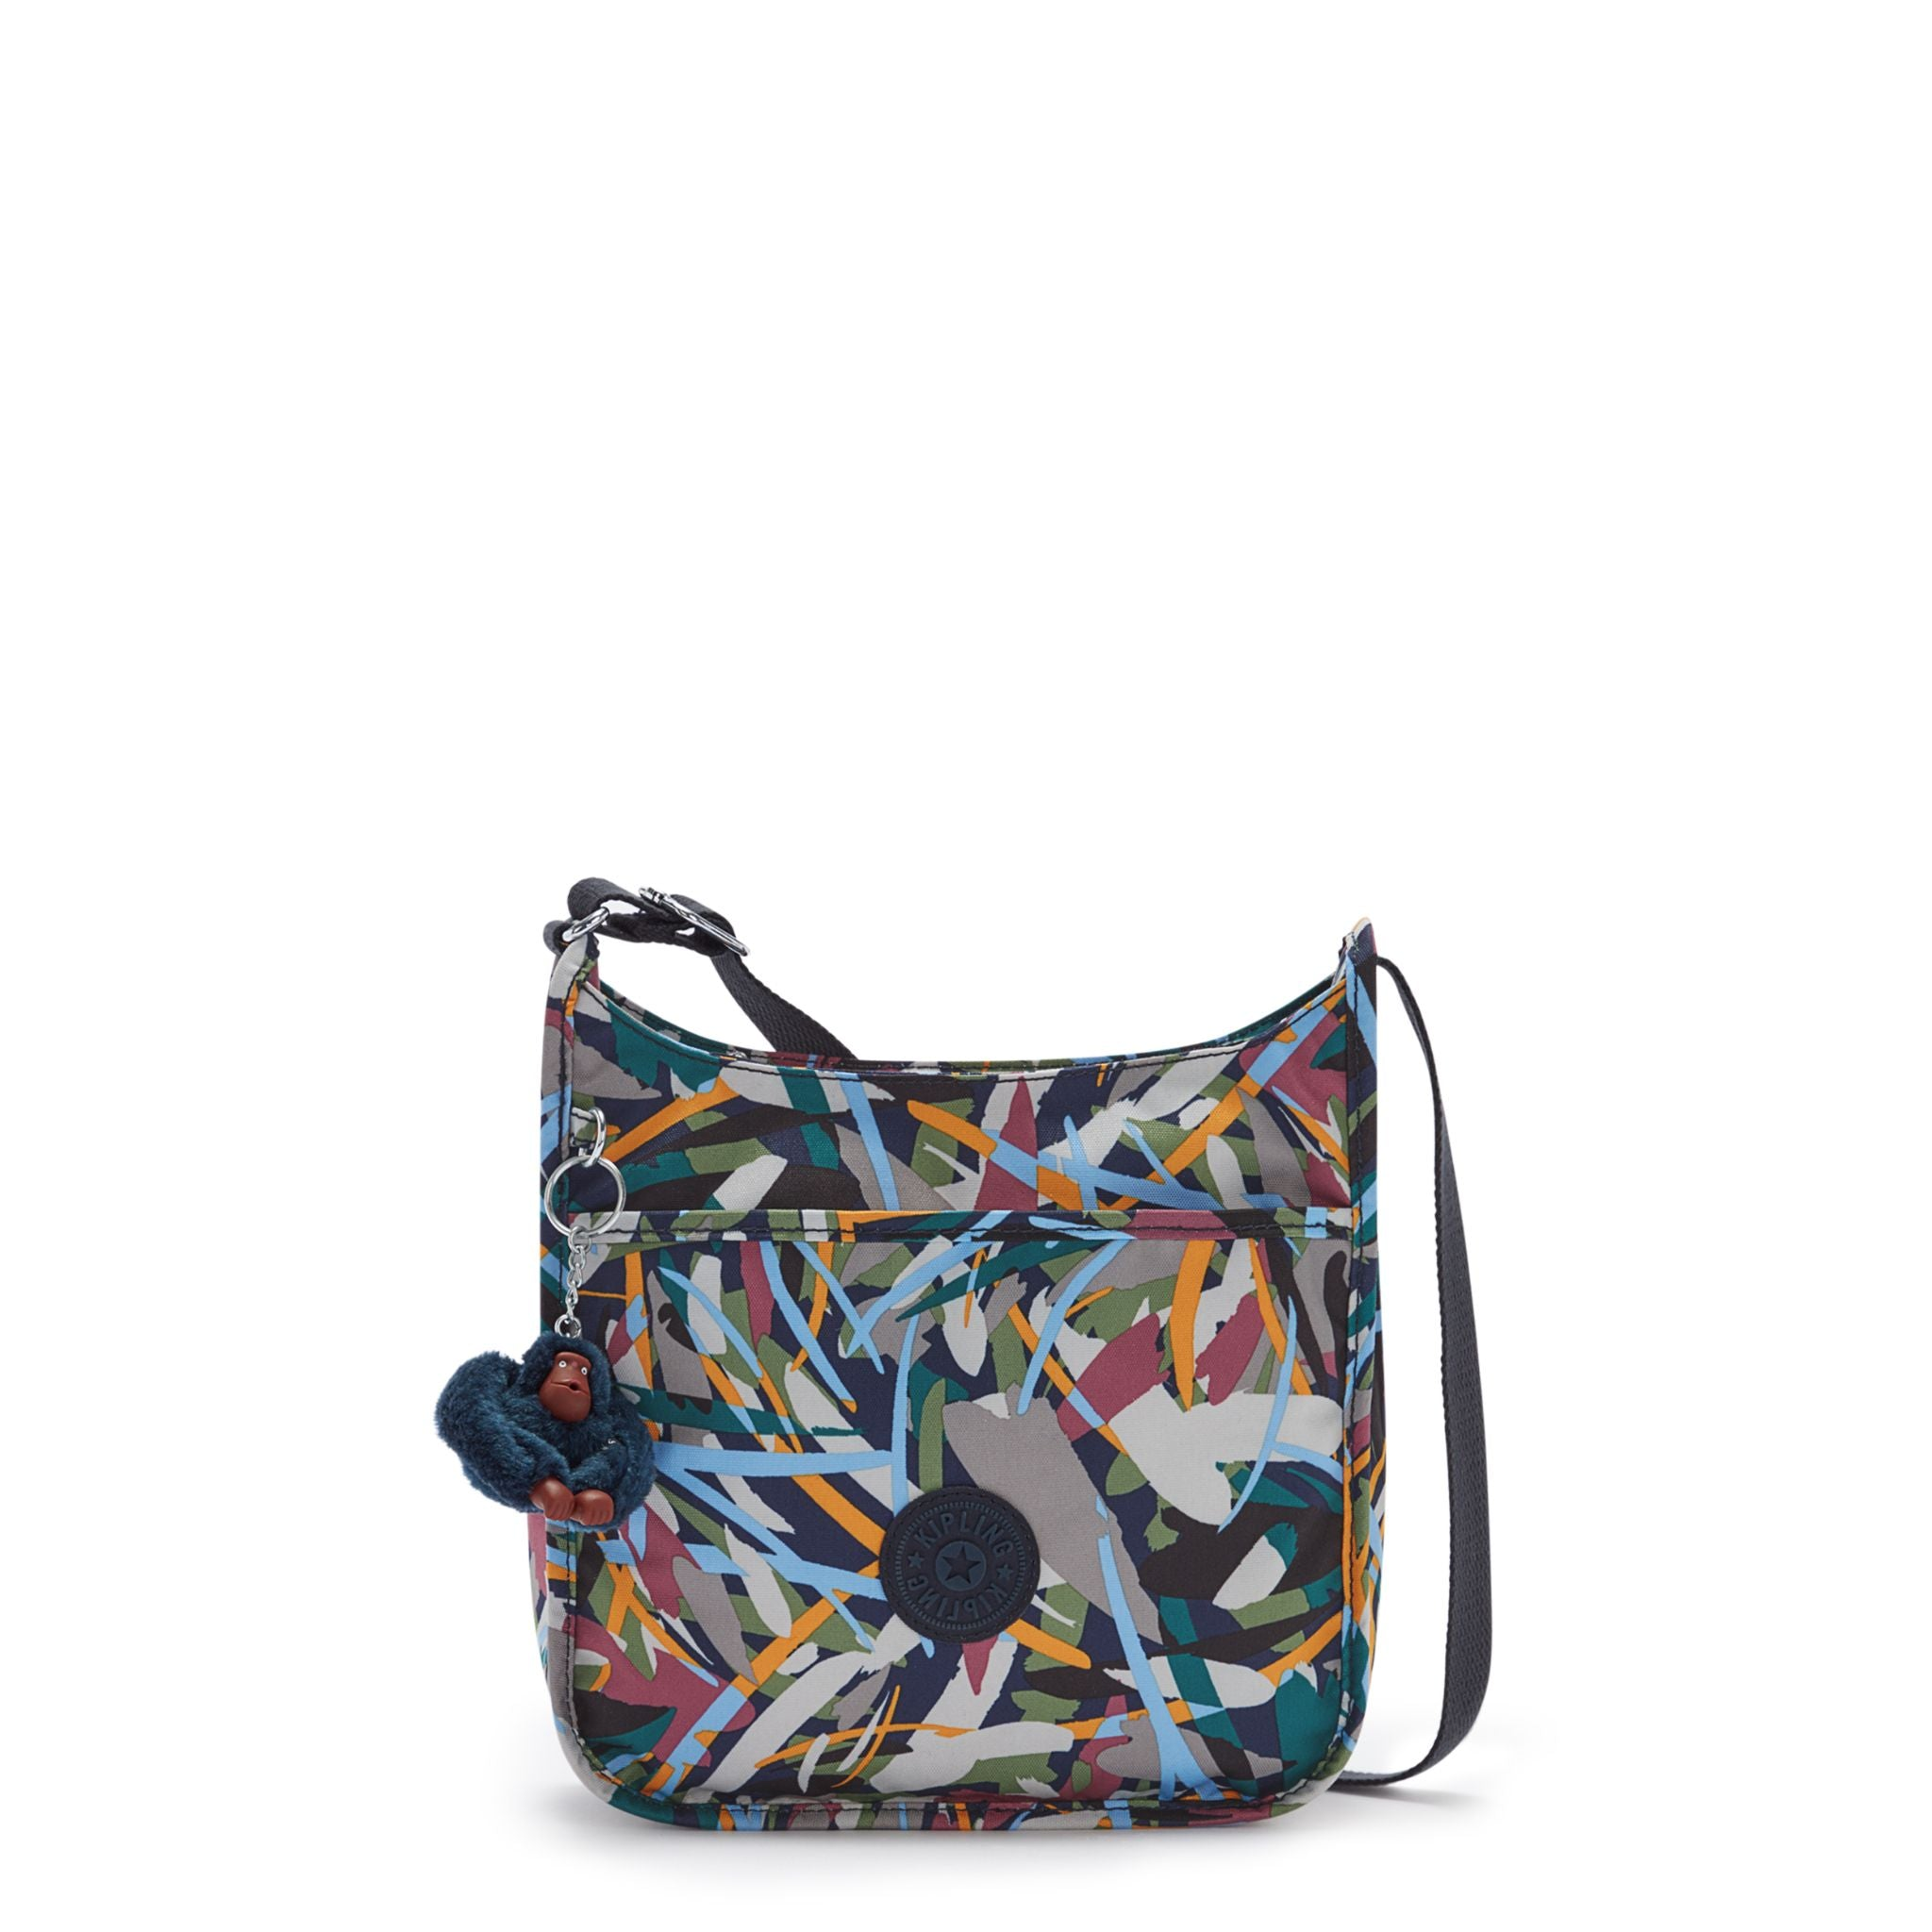 Kipling Nicci Floral Synthes